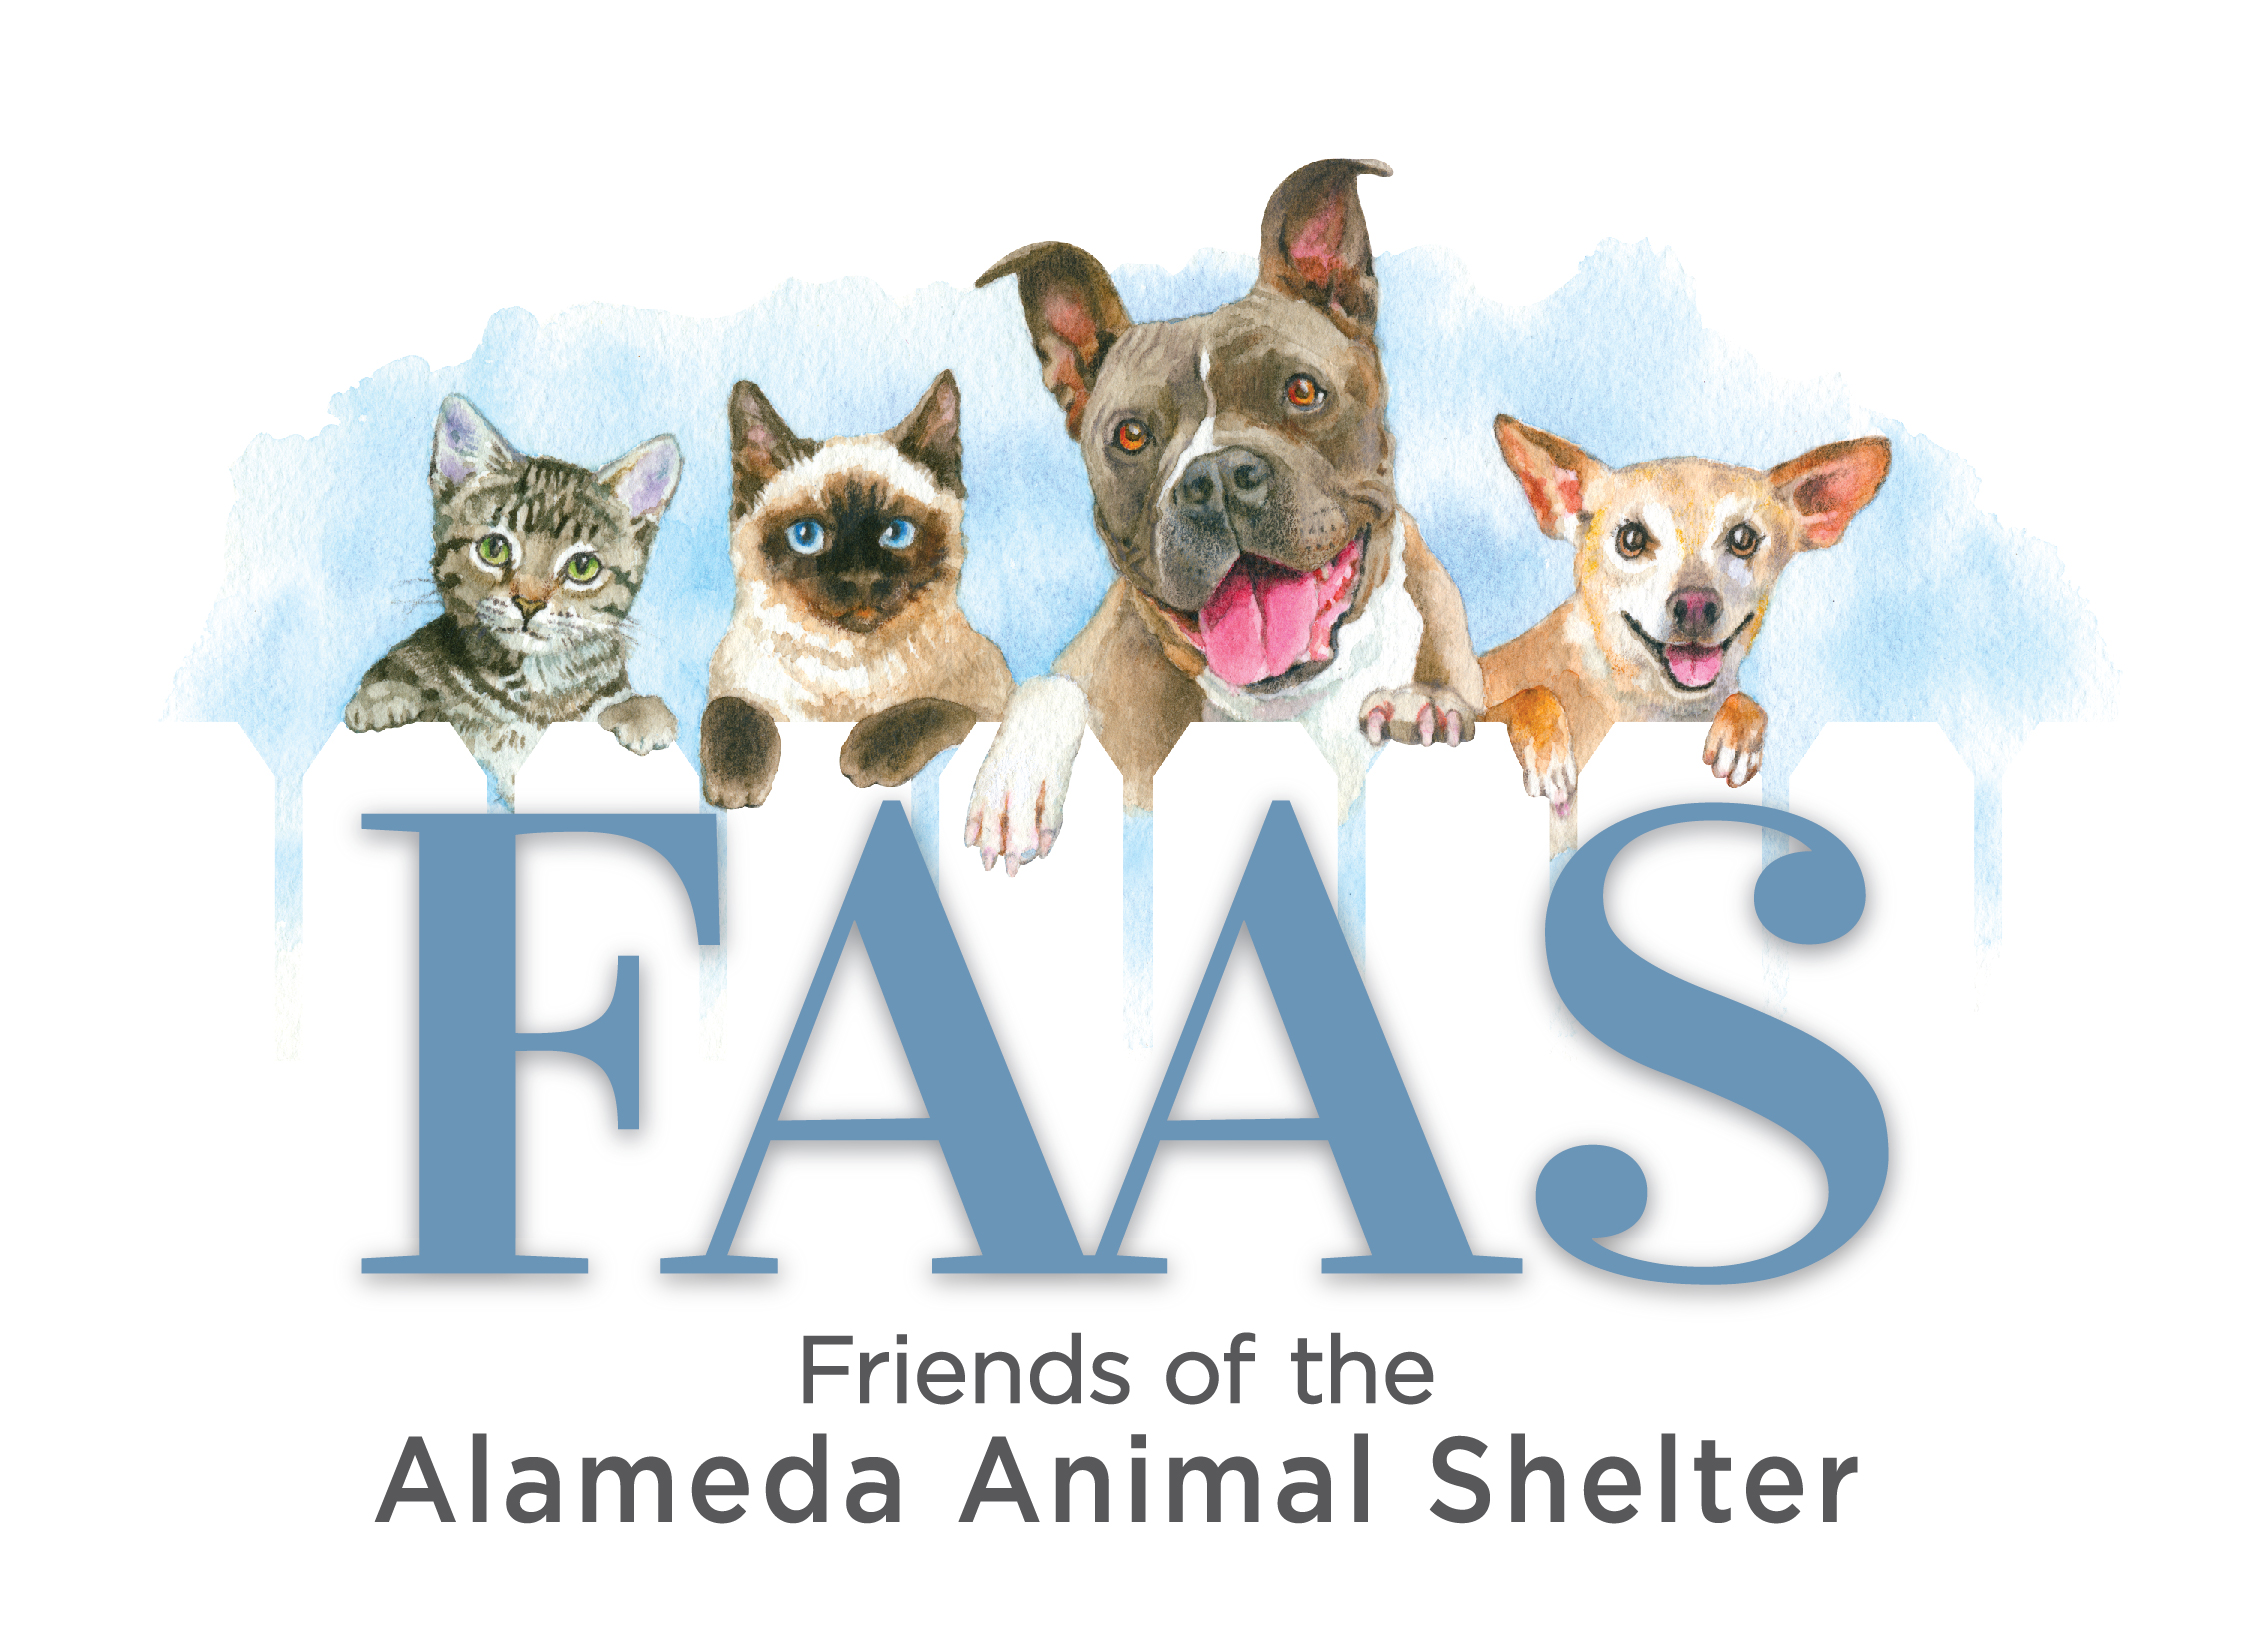 FAAS - Friends of the Alameda Animal Shelter (FAAS) mission is to shelter and care for abandoned companion animals, find them new homes, and prevent animal cruelty through education and community programs. FAAS is a 501(c)(3) organization.